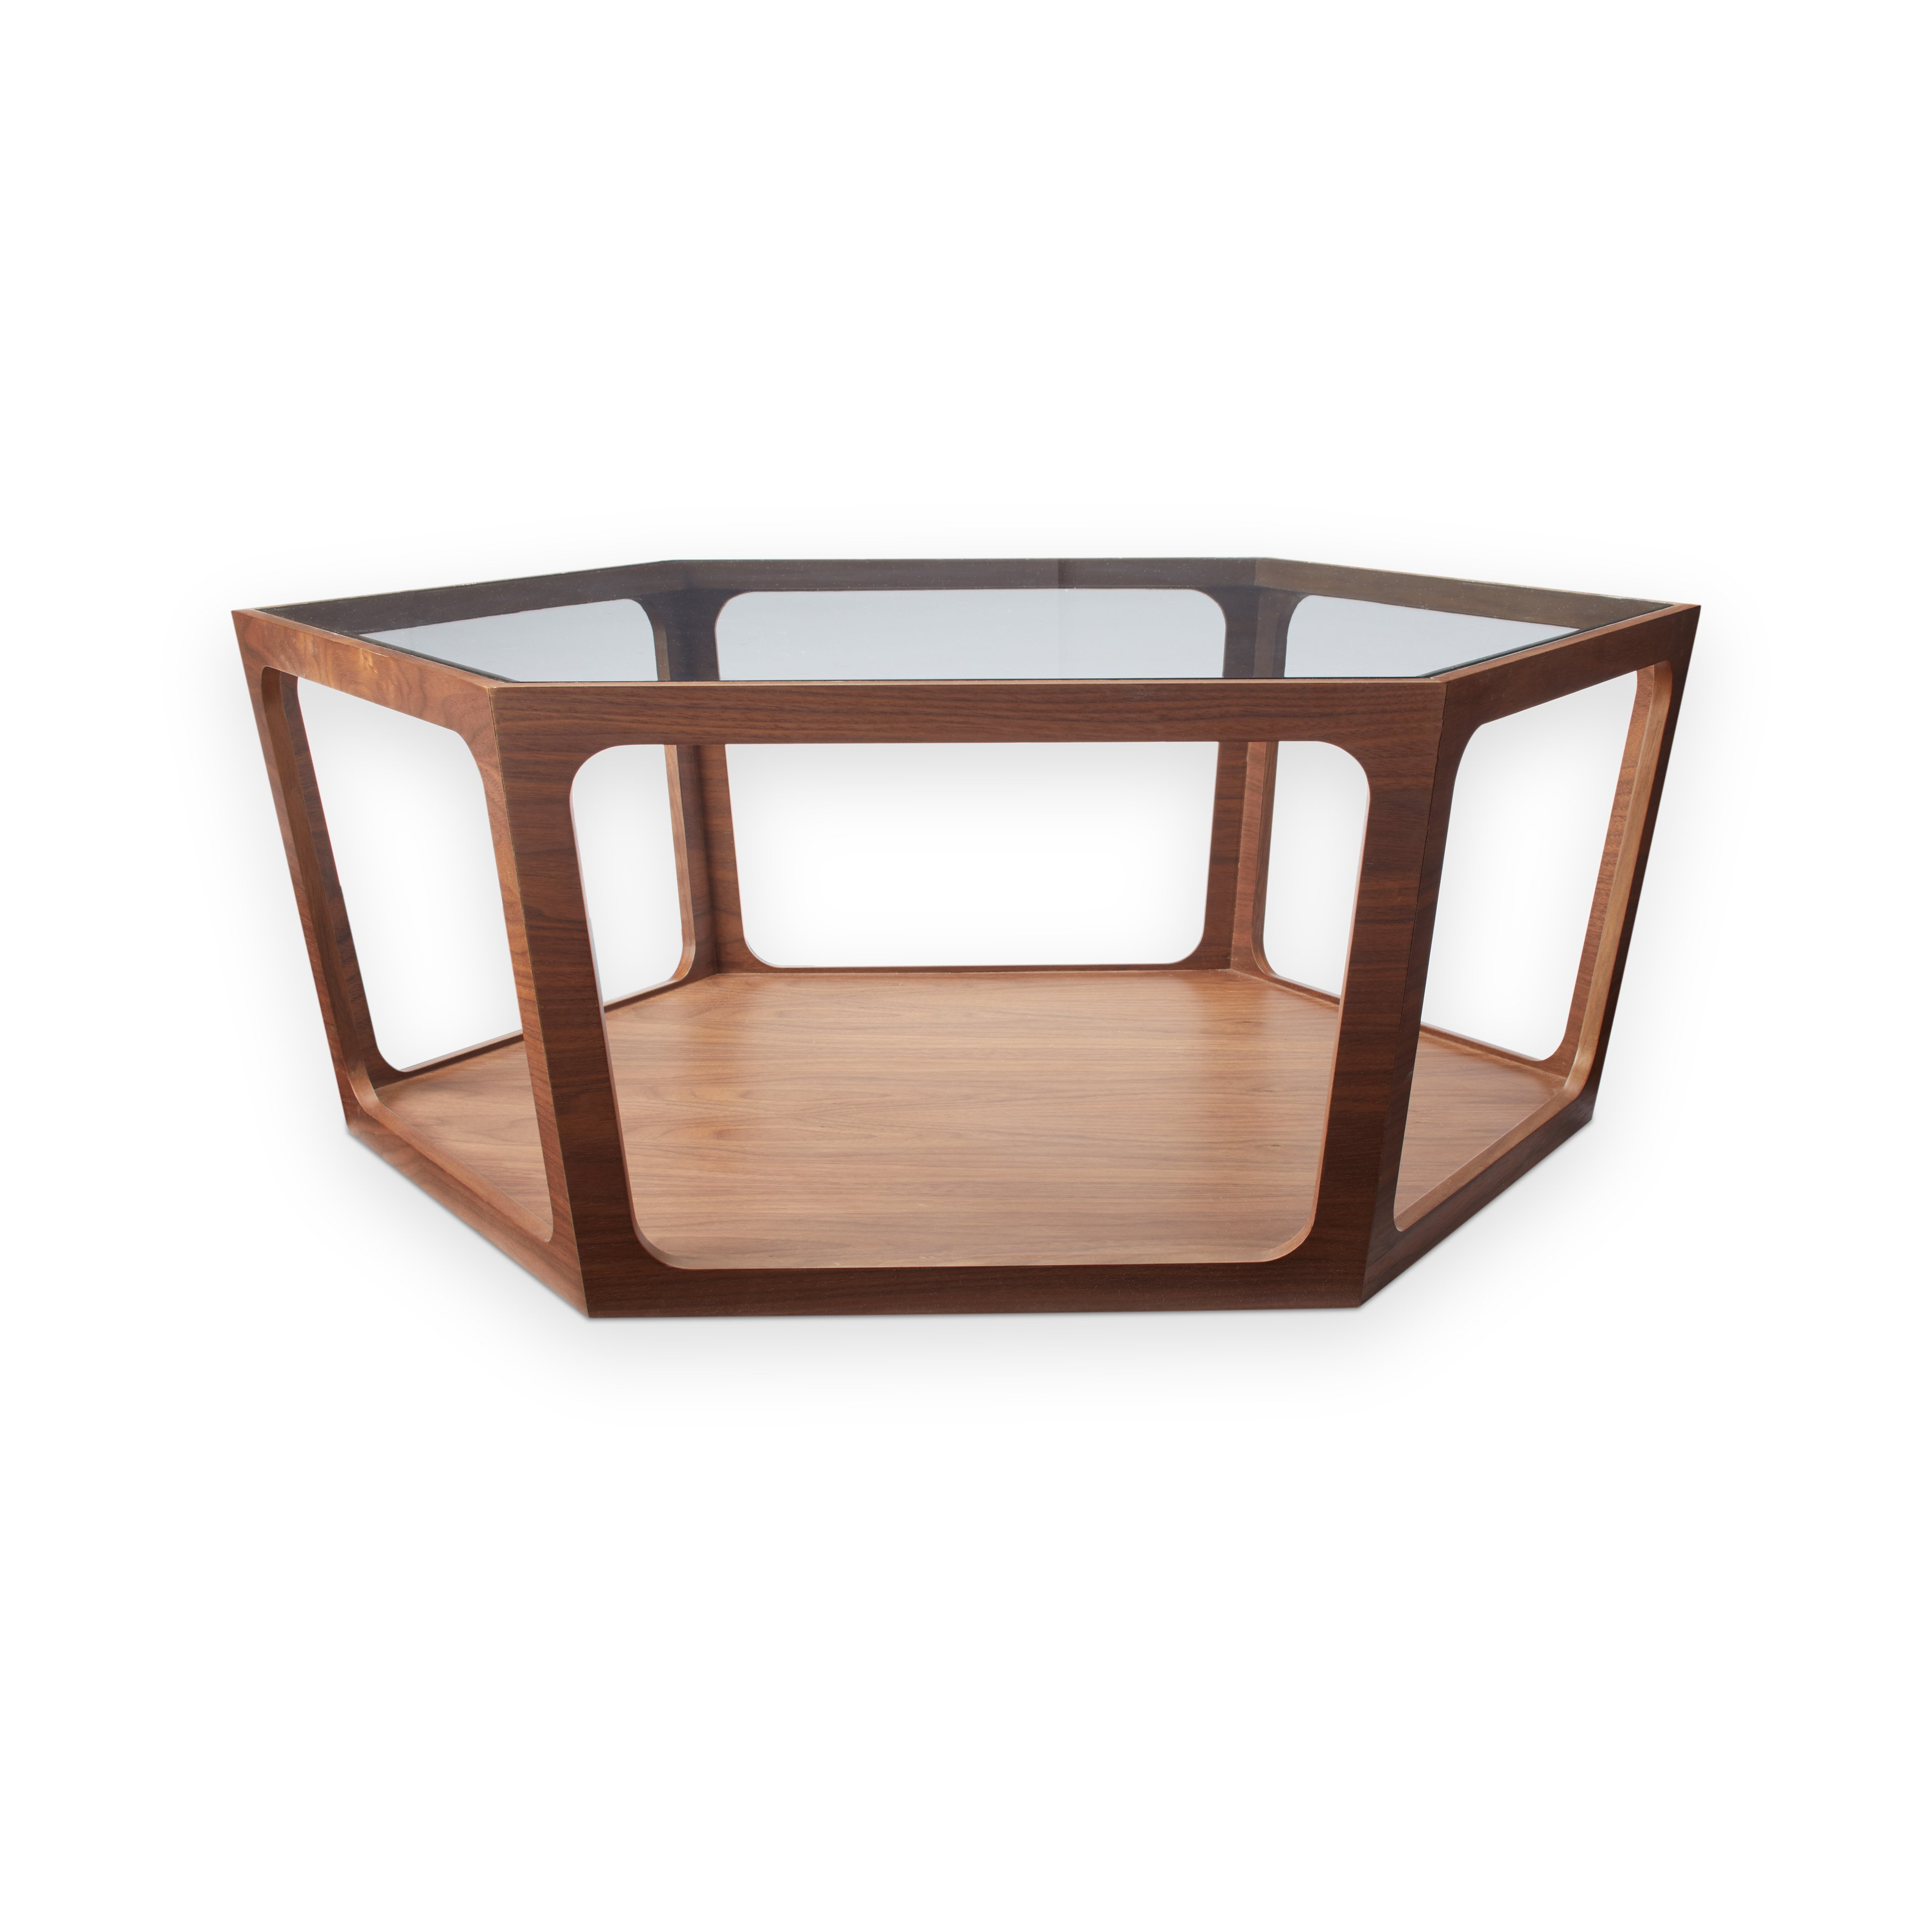 Widely Used Verona Cocktail Tables Inside Shop Abbyson Verona Walnut Coffee Table – On Sale – Free Shipping (Gallery 13 of 20)